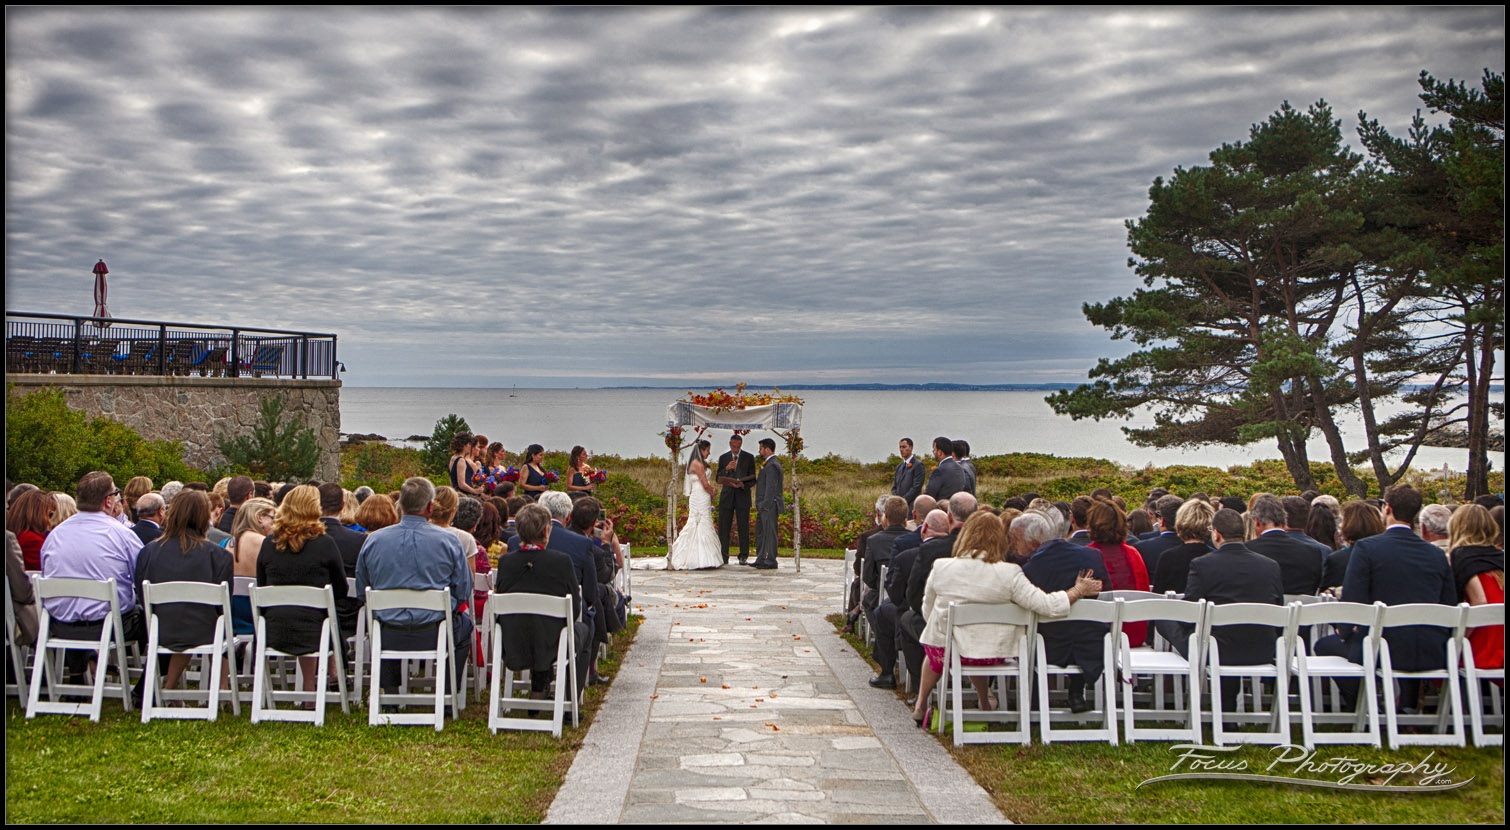 Wedding ceremony at Colony Hotel in Kennebunkport, Maine